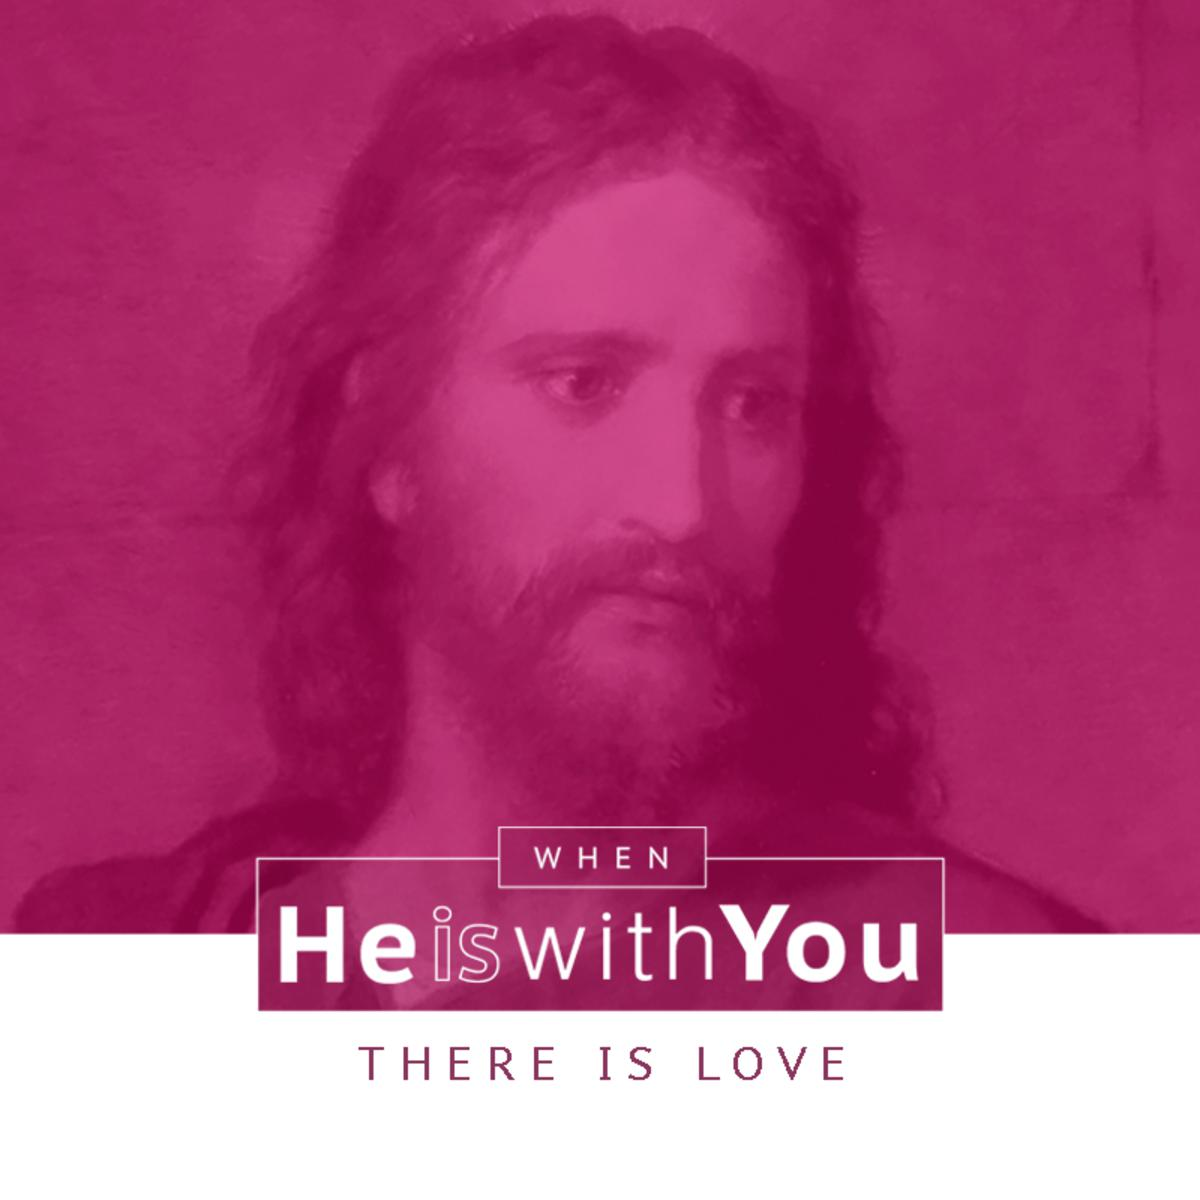 When He is with you there is love